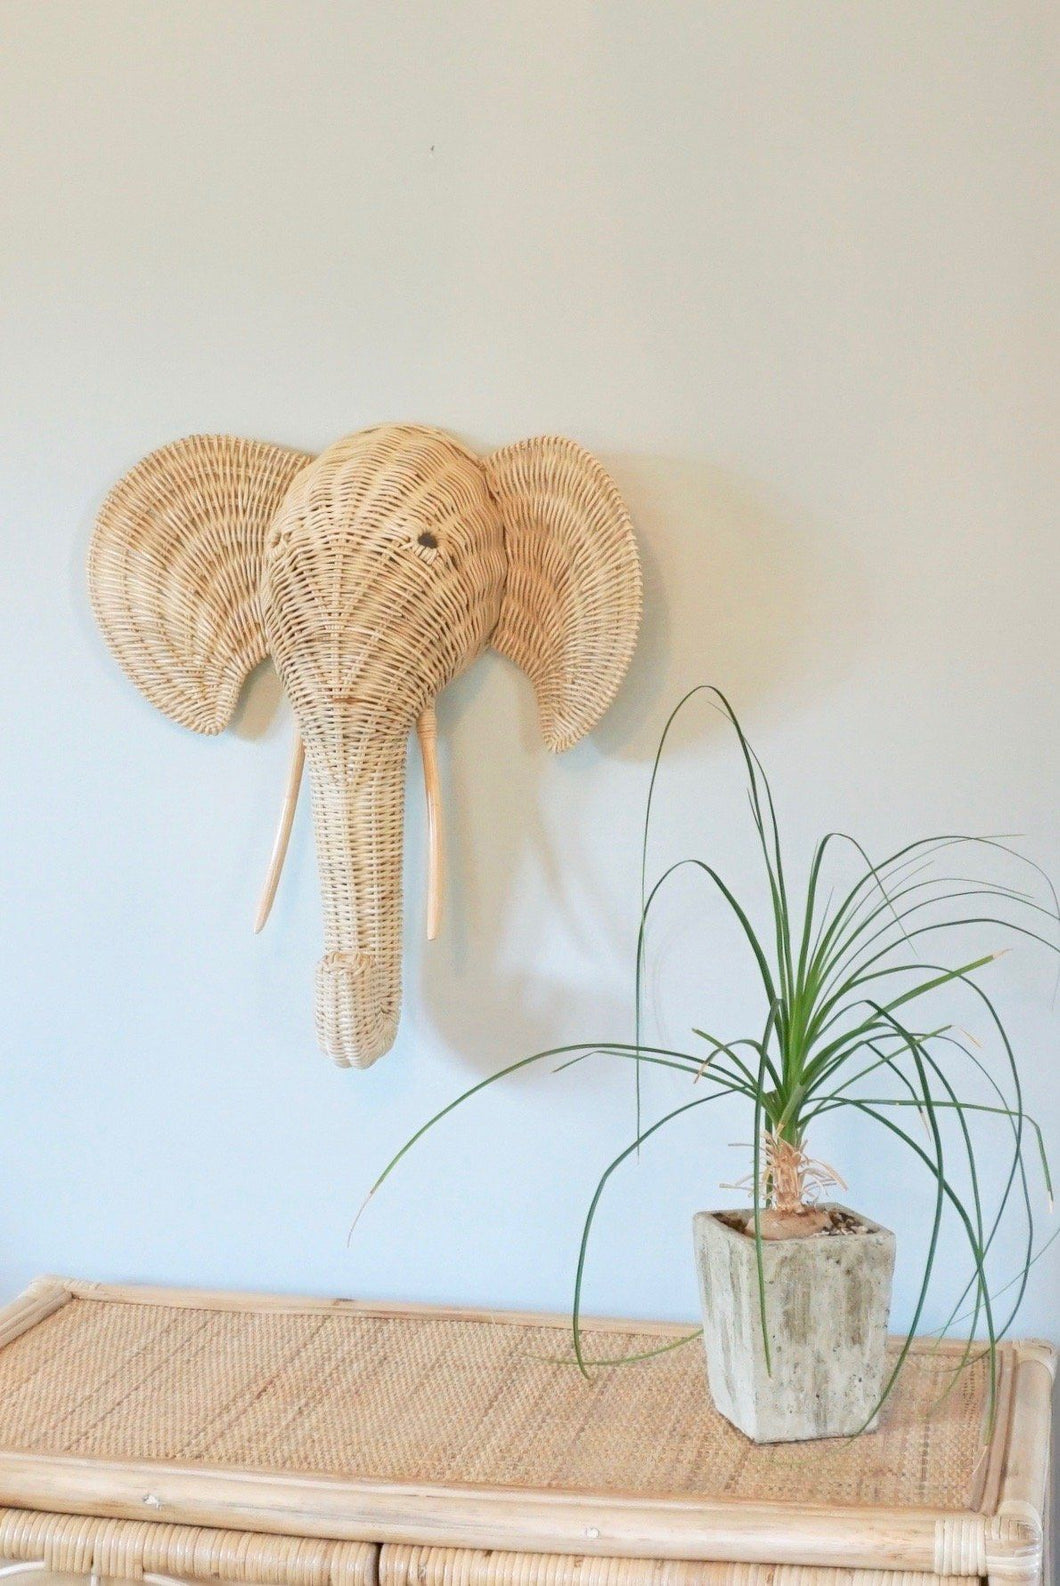 Woven Wicker Elephant Wall Hanging Decor Picnic Imports